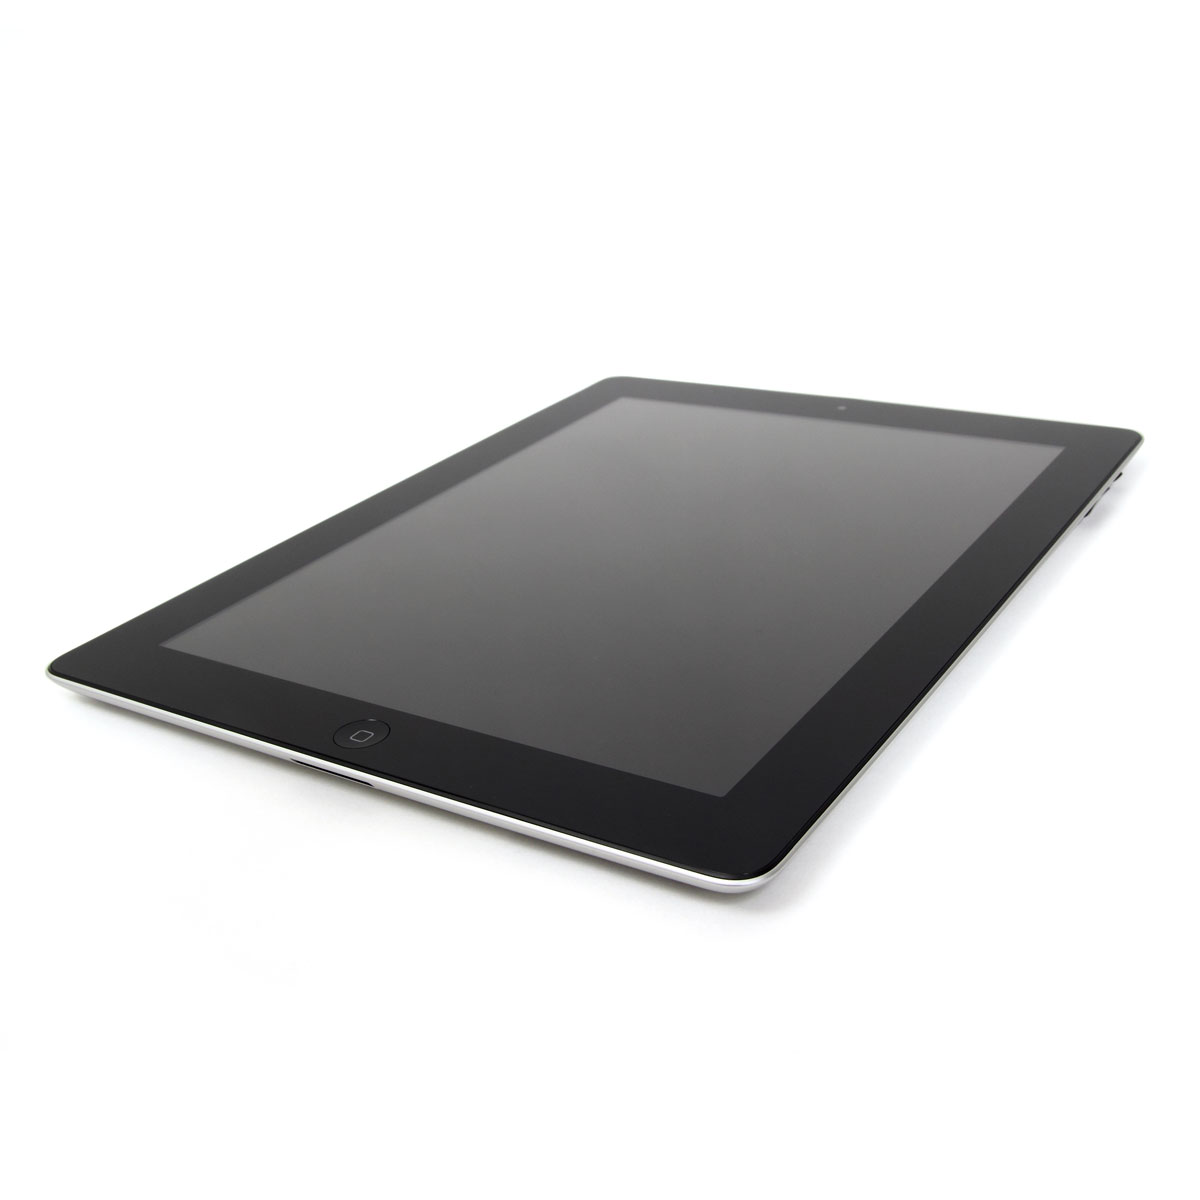 apple ipad 2 wi fi 3g 64 go noir tablette tactile apple sur. Black Bedroom Furniture Sets. Home Design Ideas